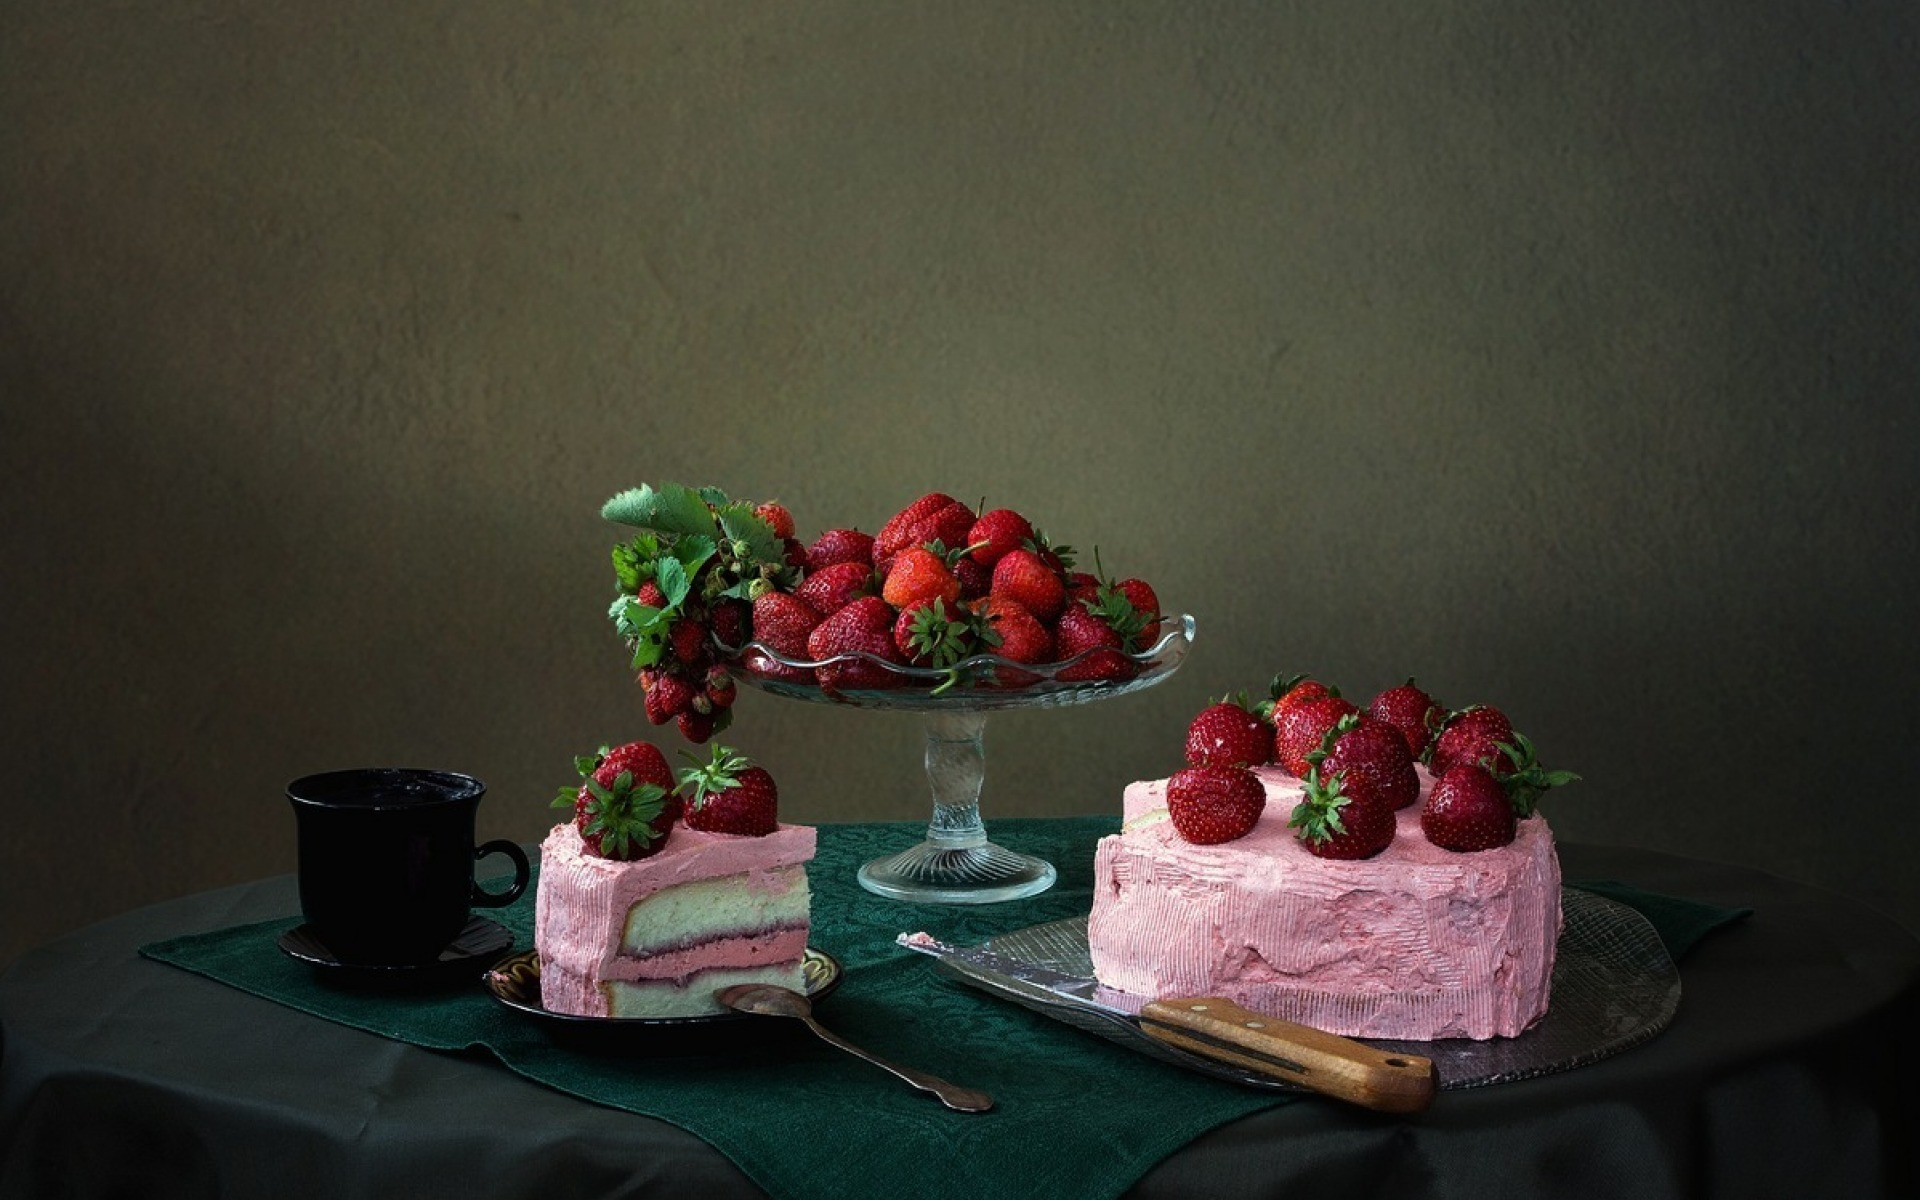 Strawberry Wallpaper For Iphone Strawberry Cake Wallpapers Strawberry Cake Stock Photos